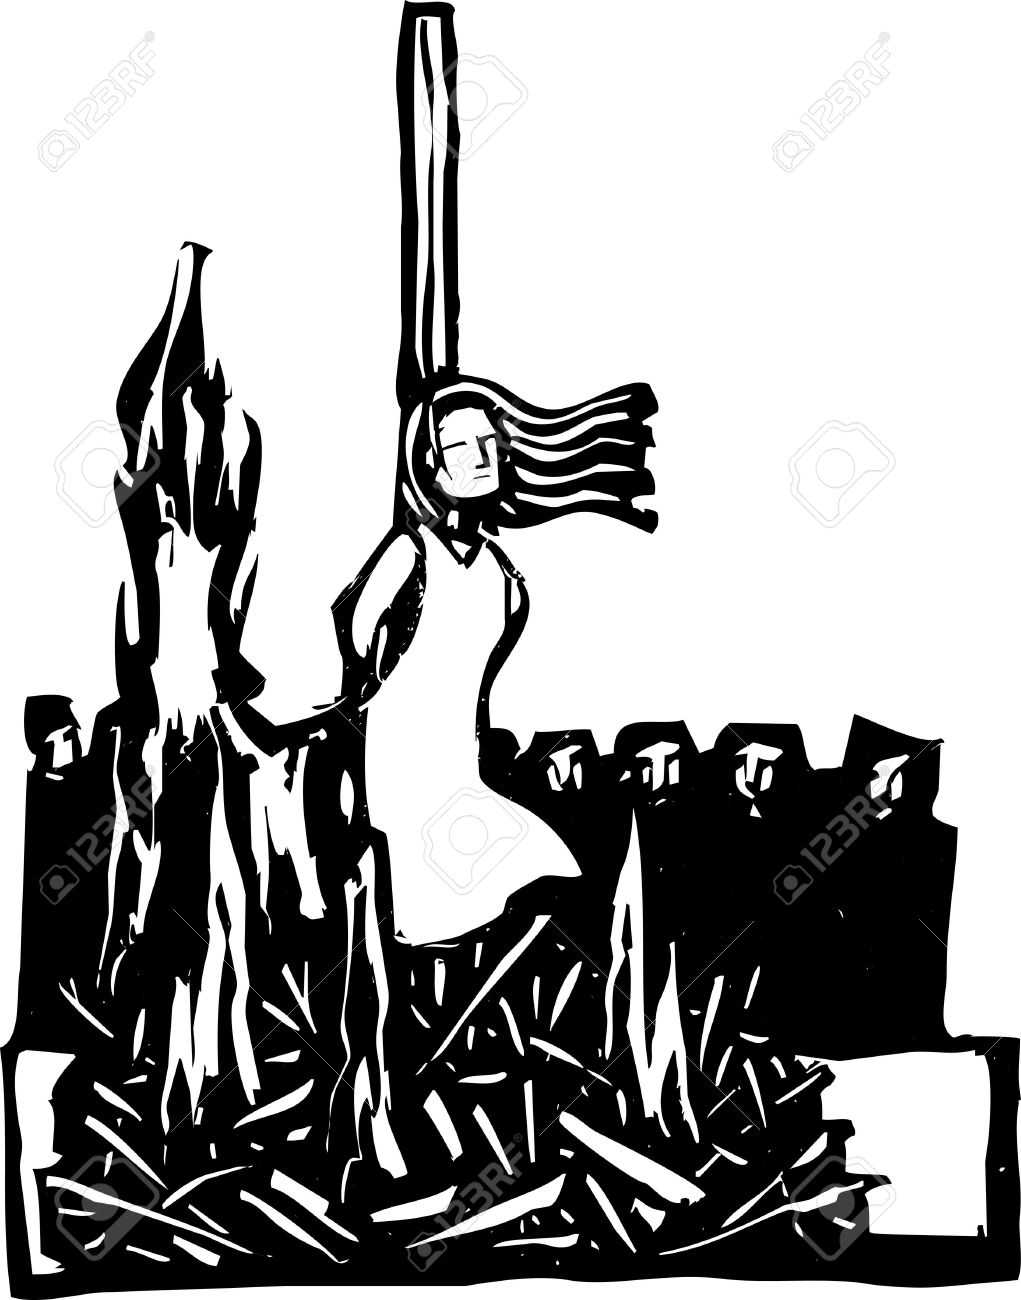 Expressionist woodcut style Woman,Saint or Witch being burned at the stake being watched by a crowd Stock Vector - 16172991